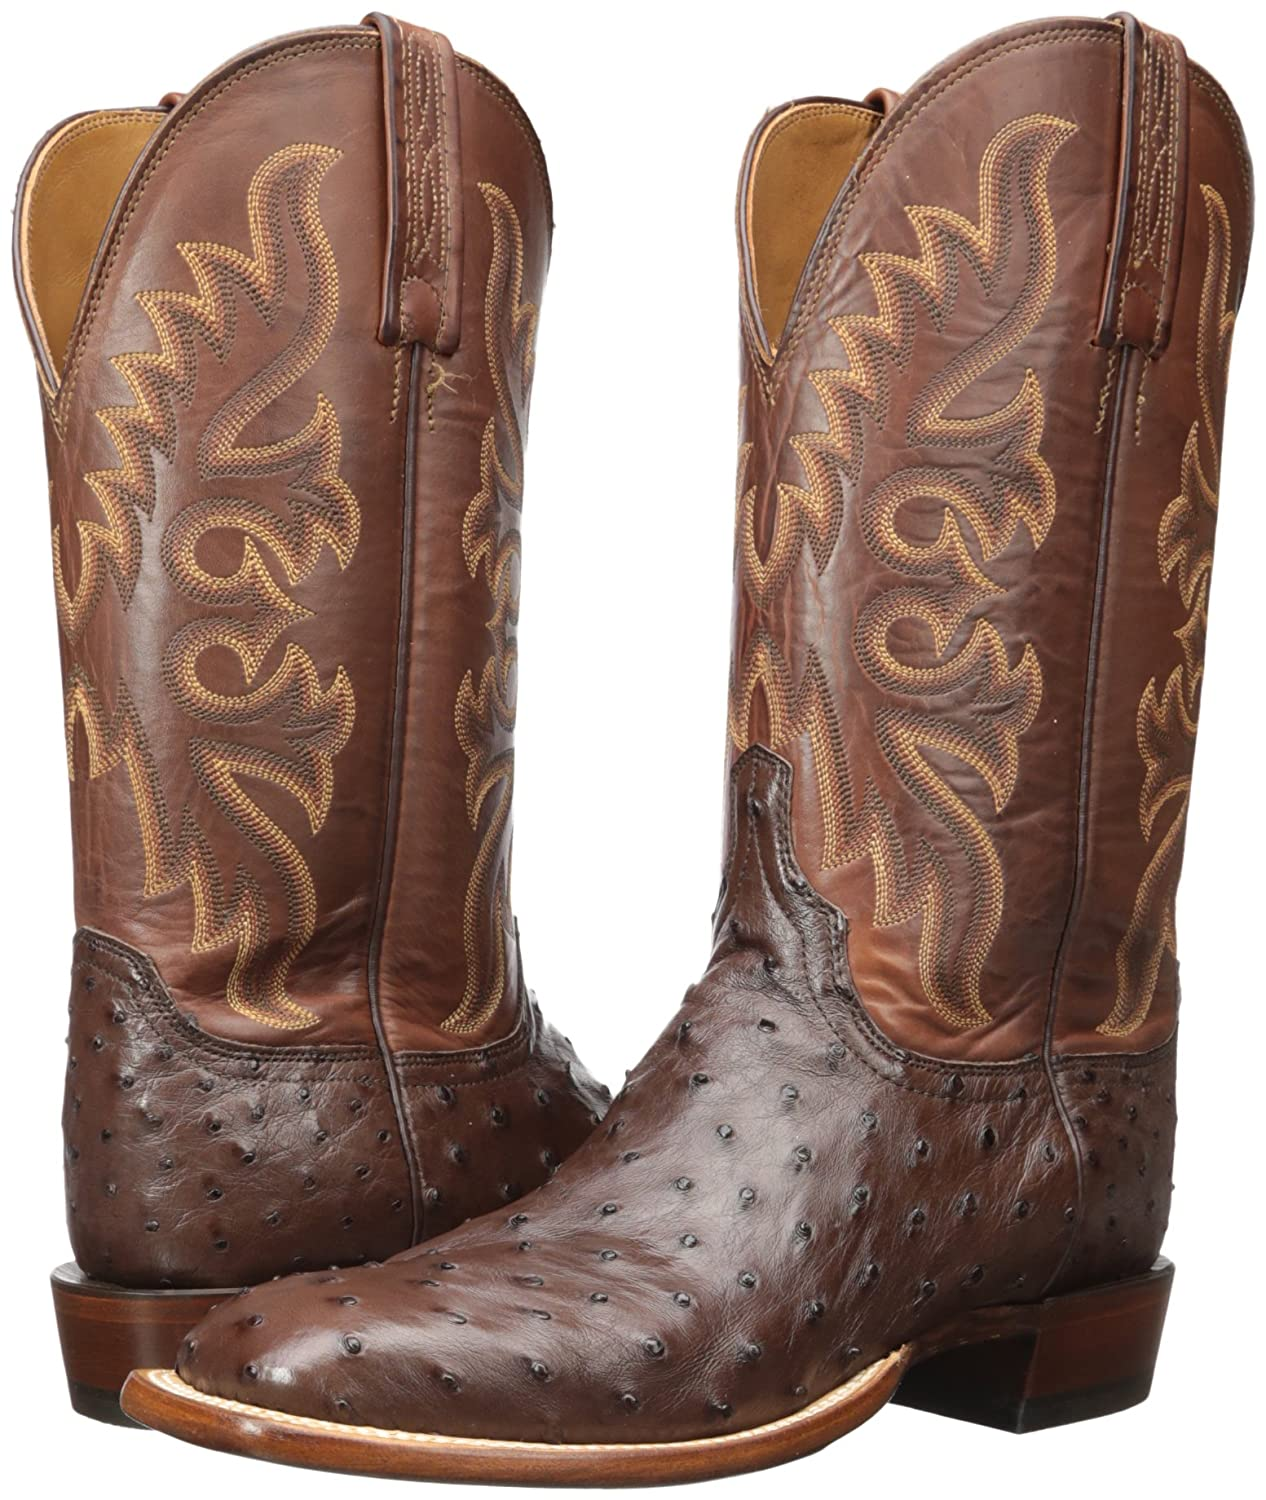 17a197c79d Lucchese Bootmaker Hombres Harmon Western Boot Sienna   Tan Burnished